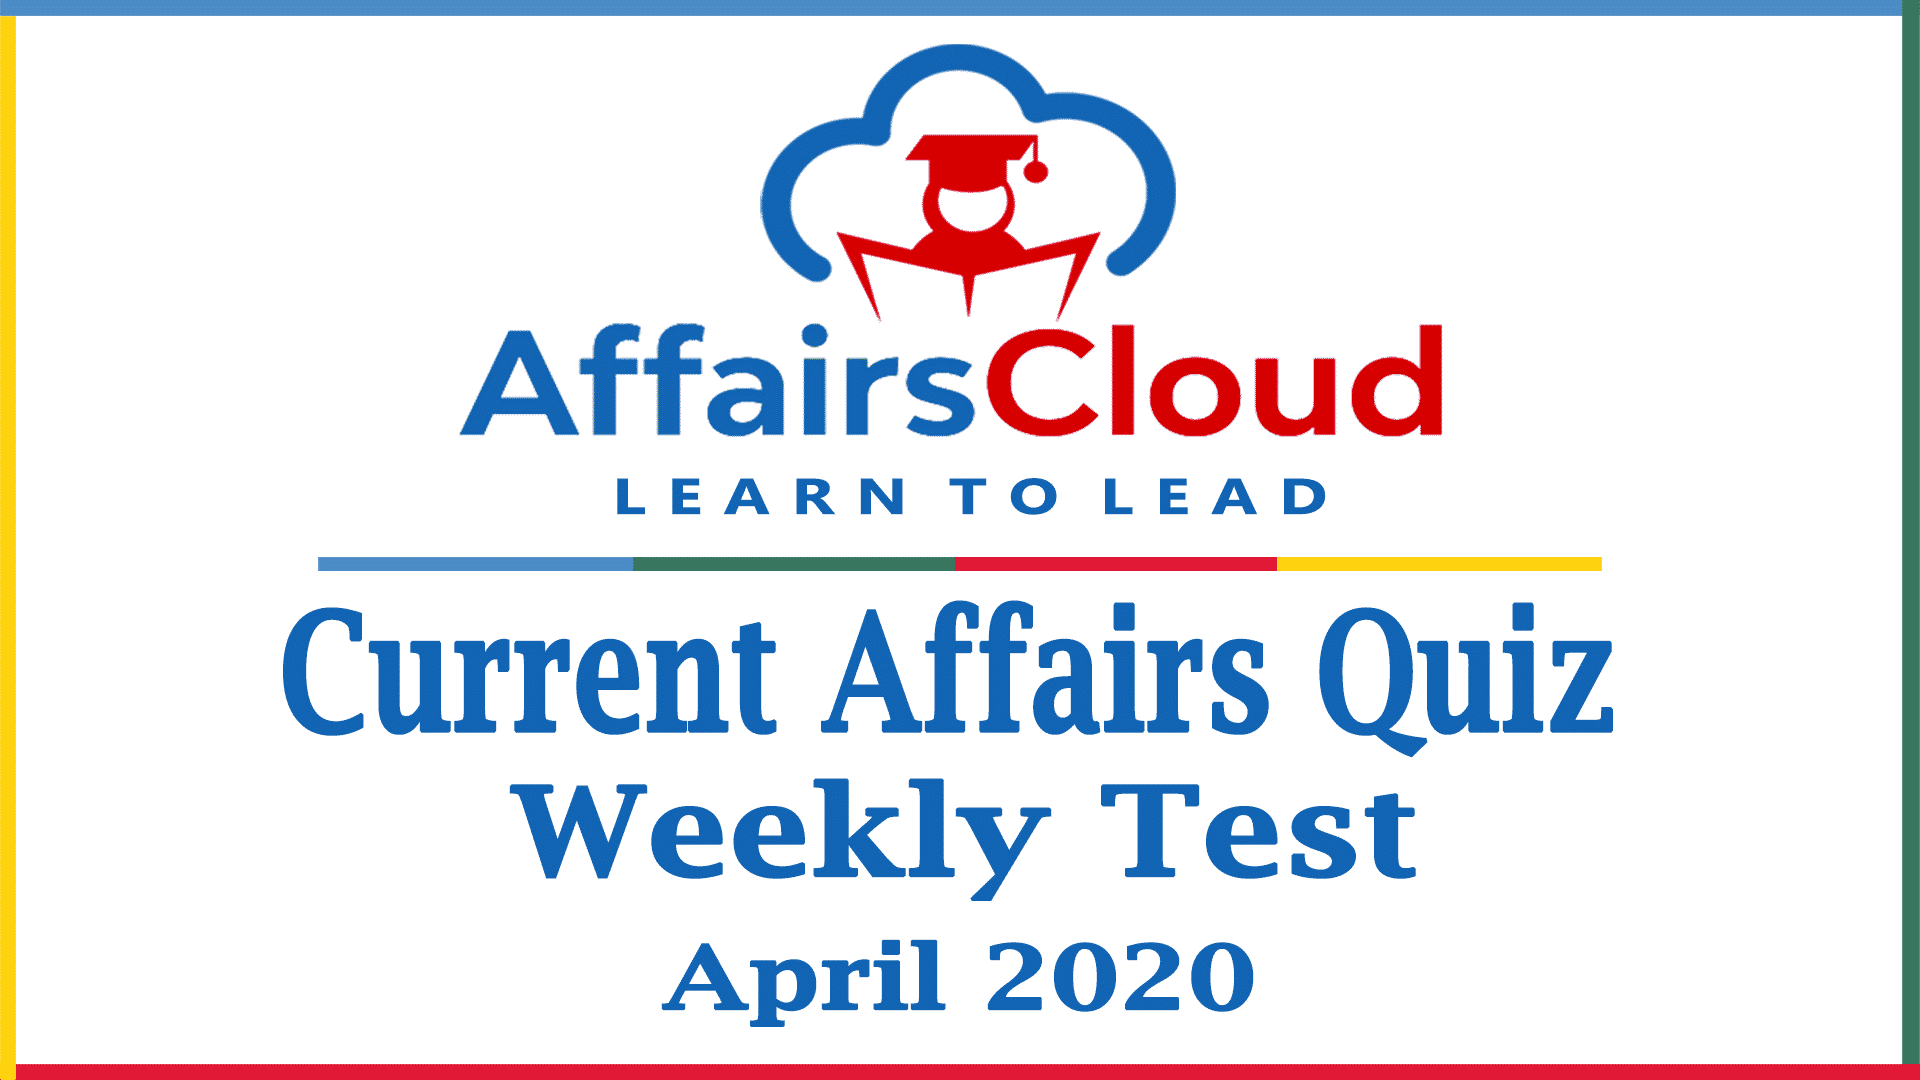 Current Affairs Weekly Test April 2020 new